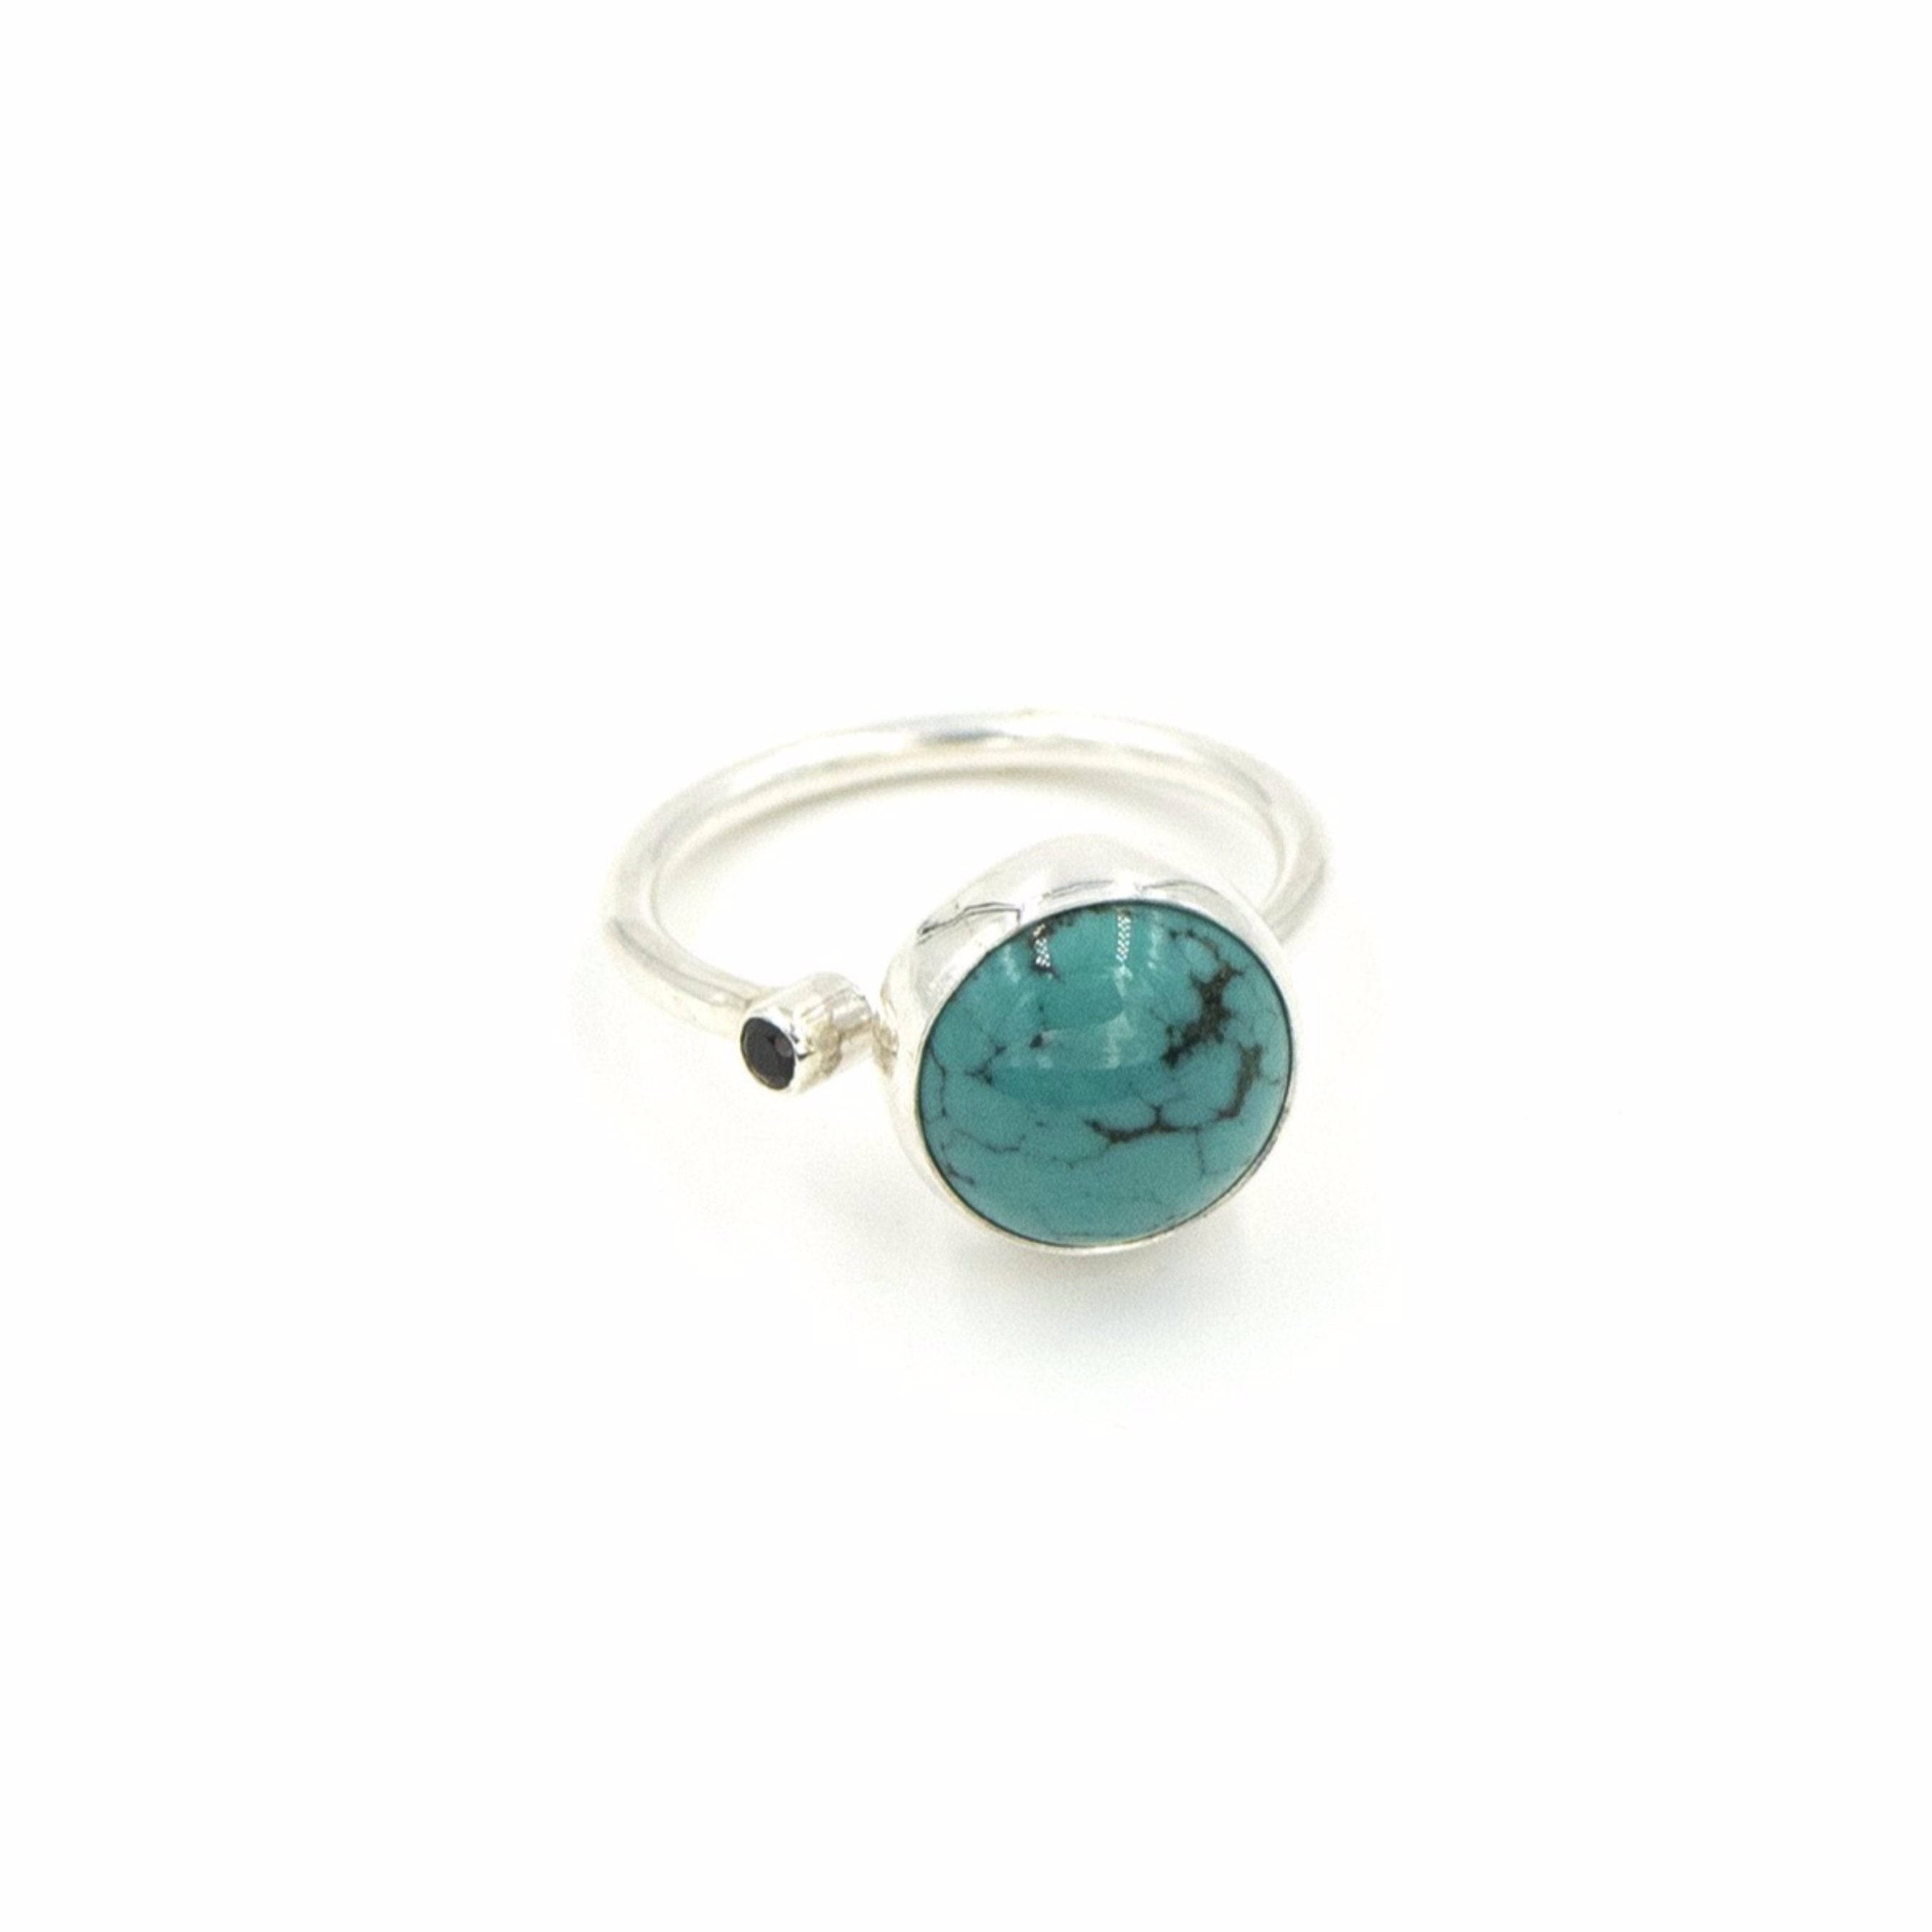 Turquoise and Black Spinel Open Ring